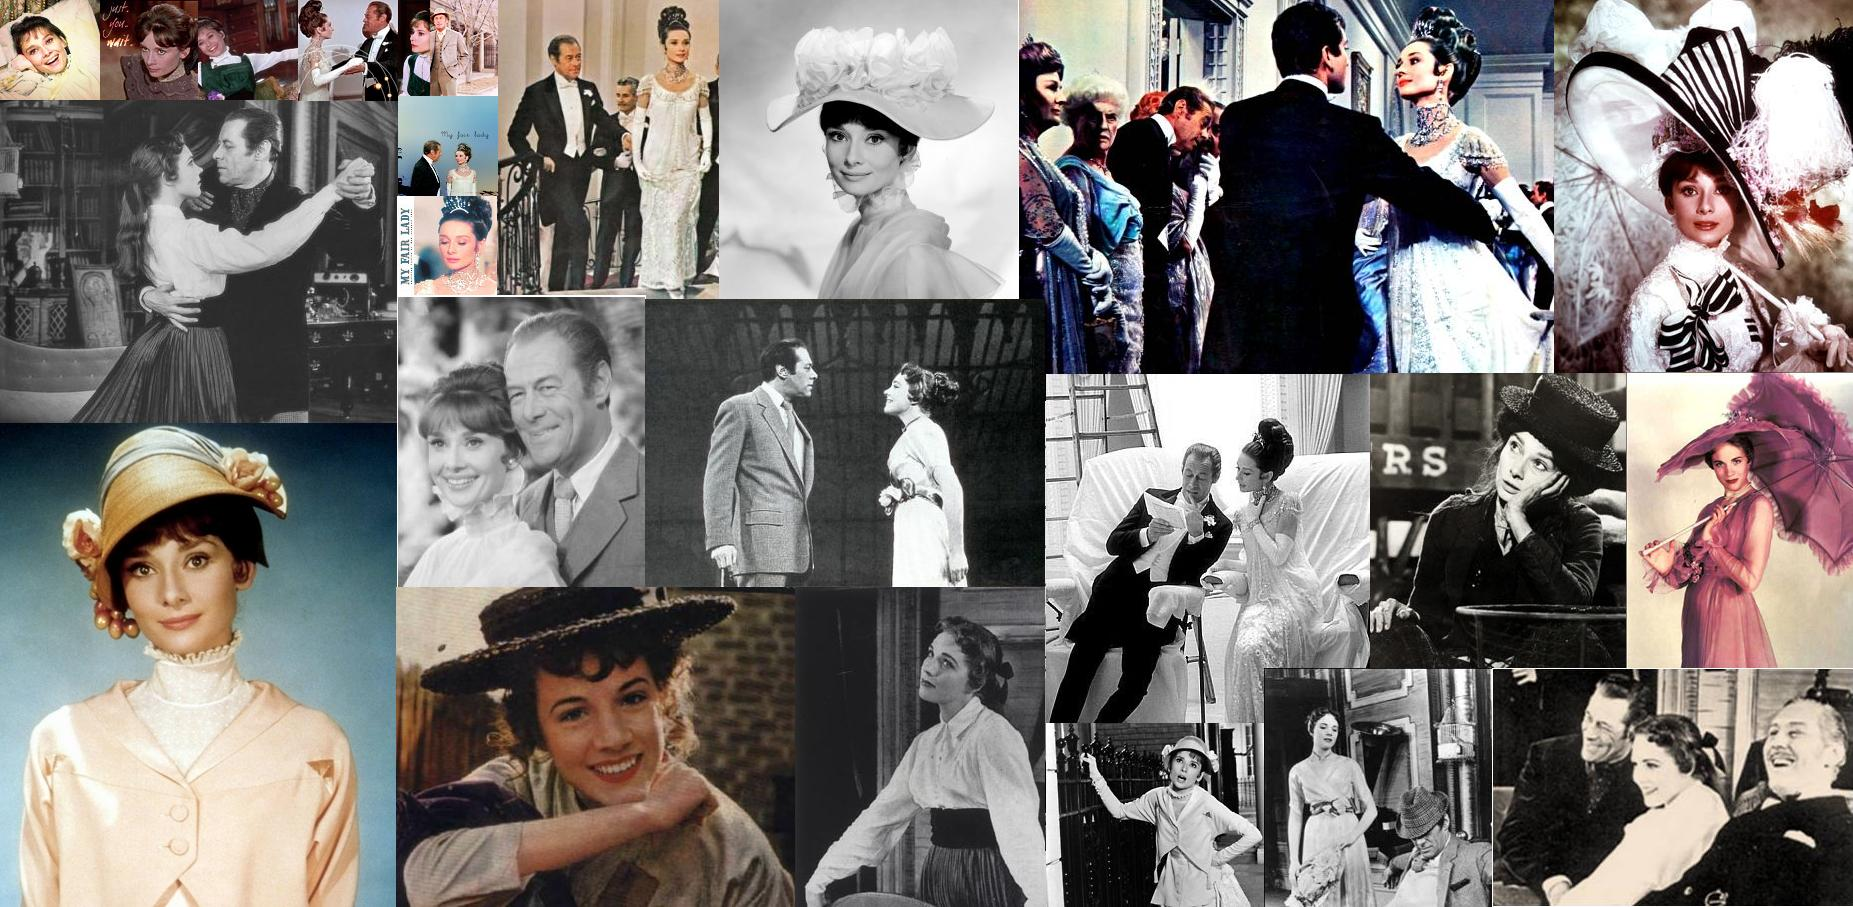 comparing pygmalion and my fair lady My fair lady, the popular musical by lerner and loewe, is generally hampered by the music itself, for it draws too much attention to itself--the endless songs interrupting the action too often for any points in it to be taken seriously.